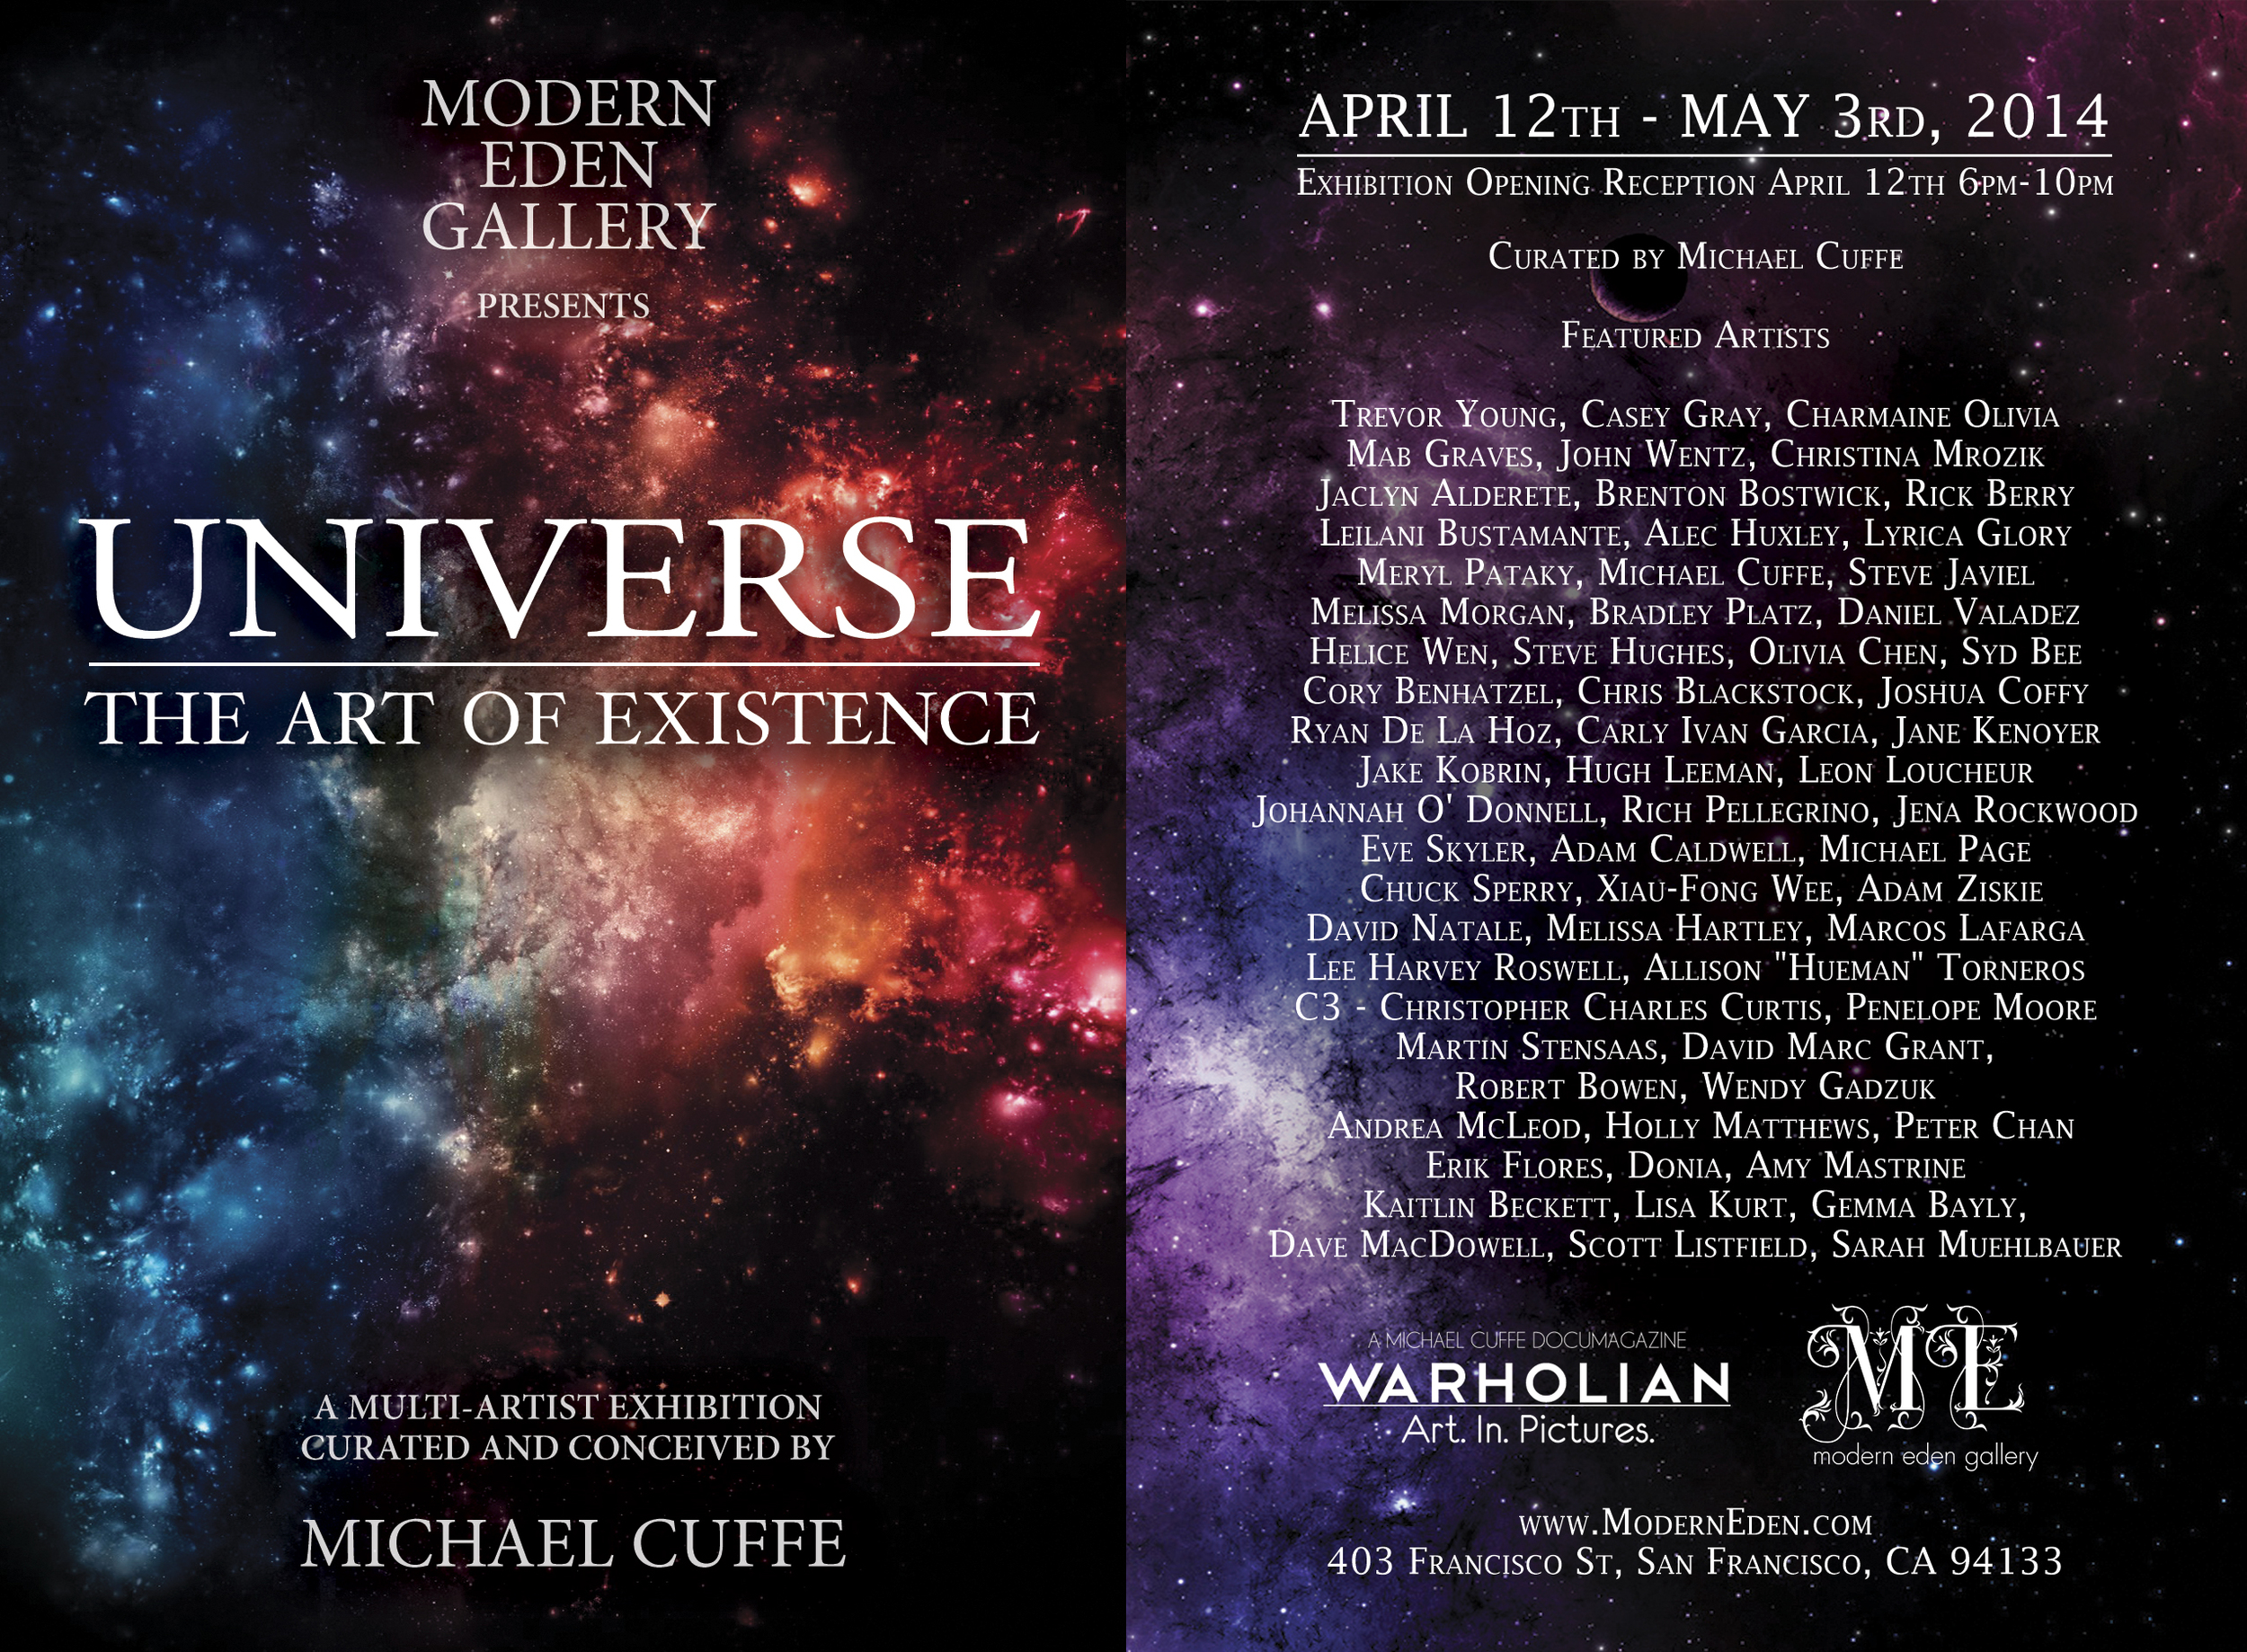 so pumped to be a part of this upcoming show curated by Michael Cuffe of WARHOLIAN.